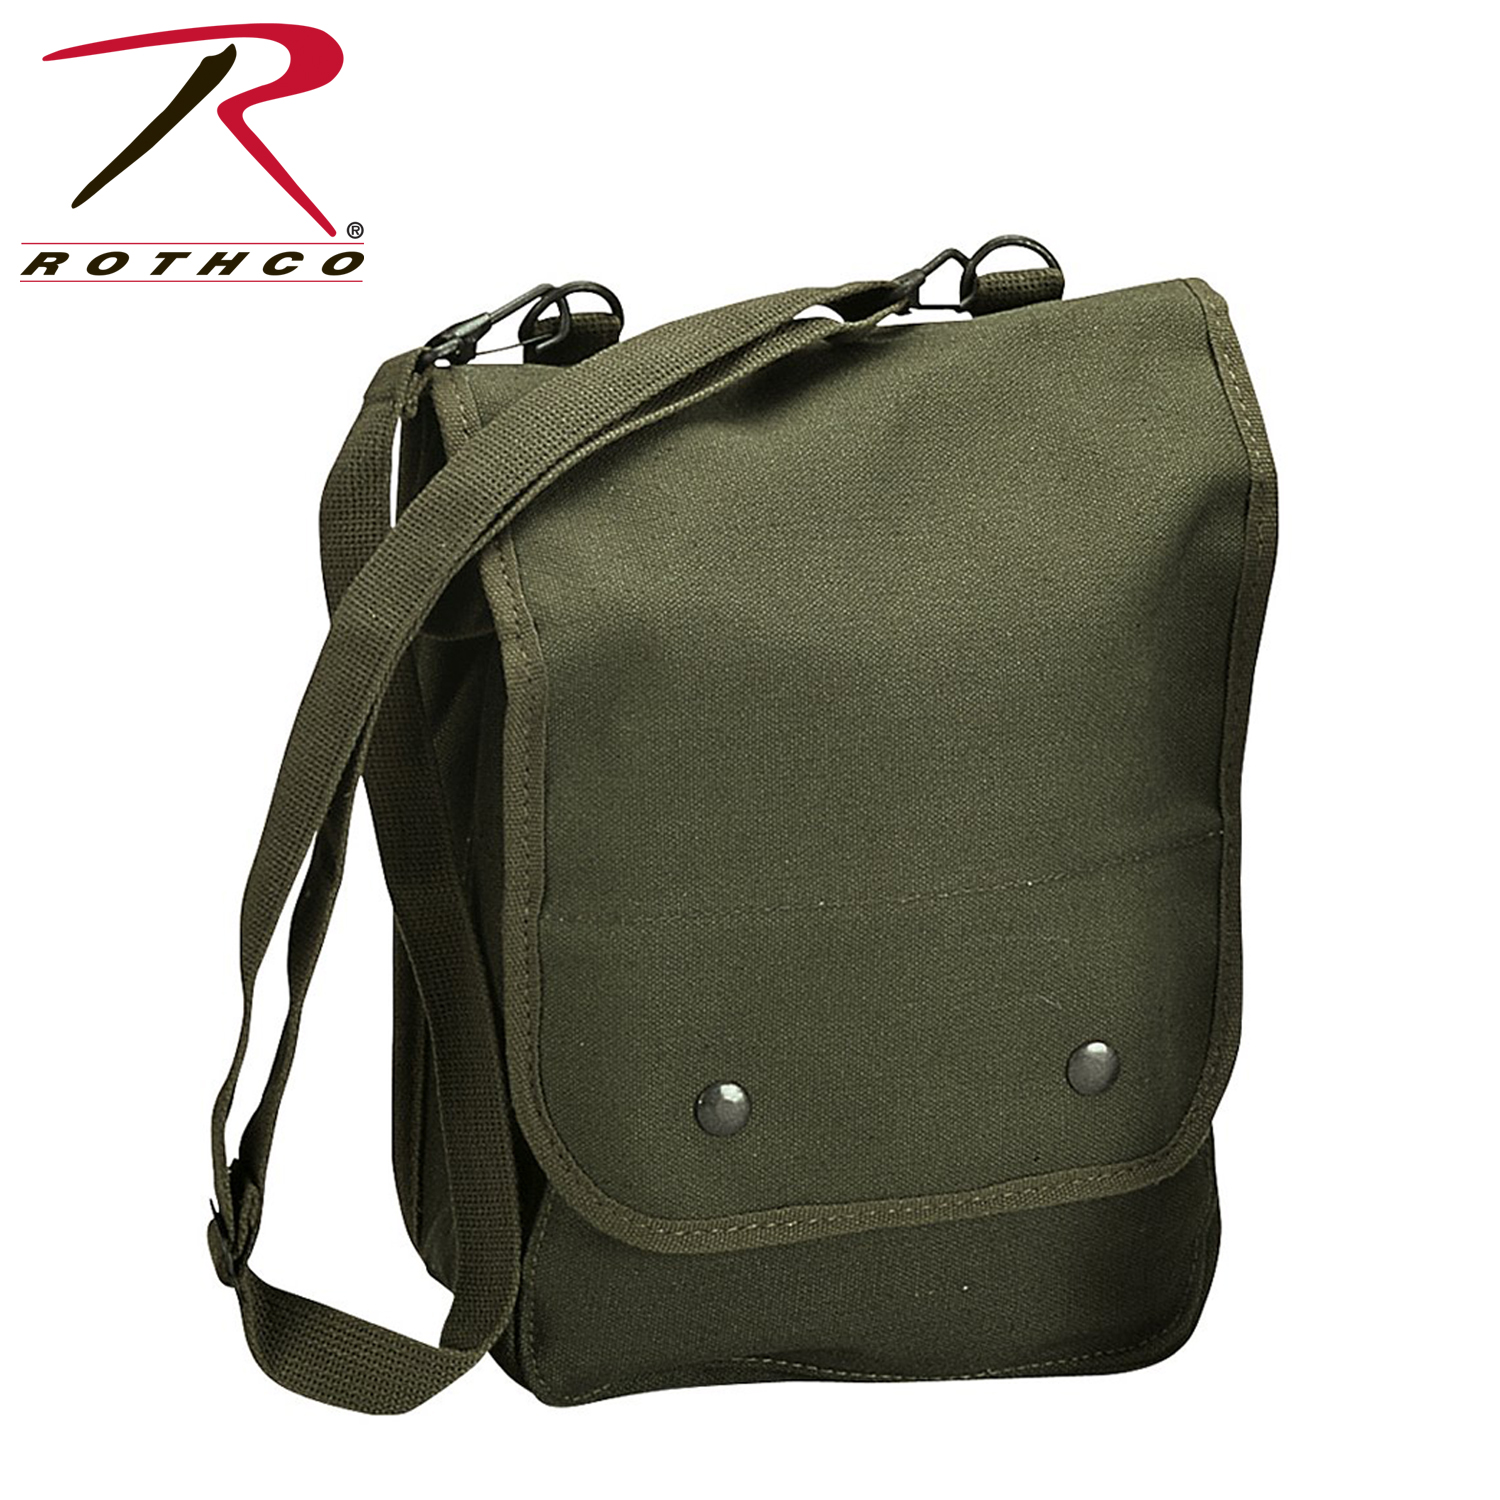 Rothco 5797   5796   5597 Canvas Map Case Shoulder Bag  748914a1bfe